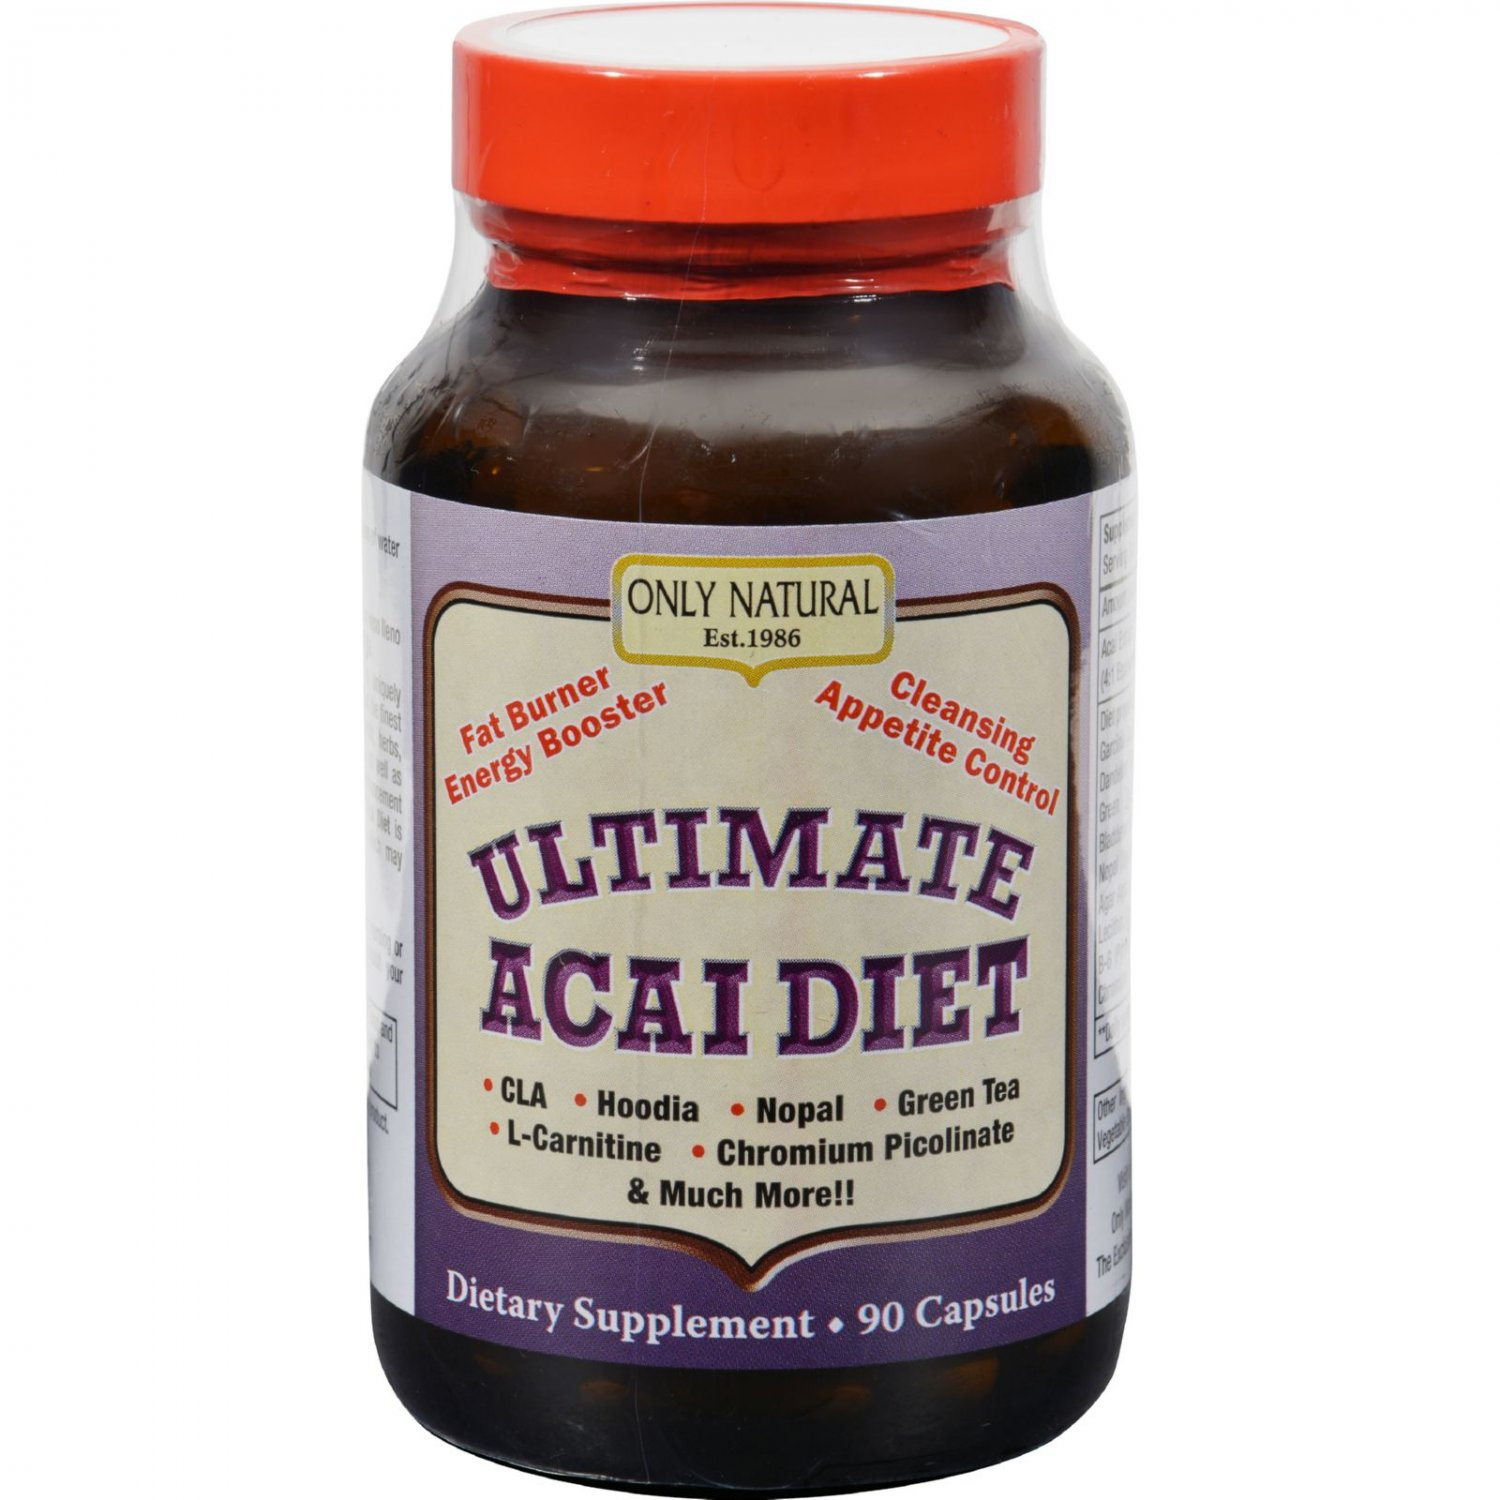 Only Natural Ultimate Acai Diet - 90 Capsules